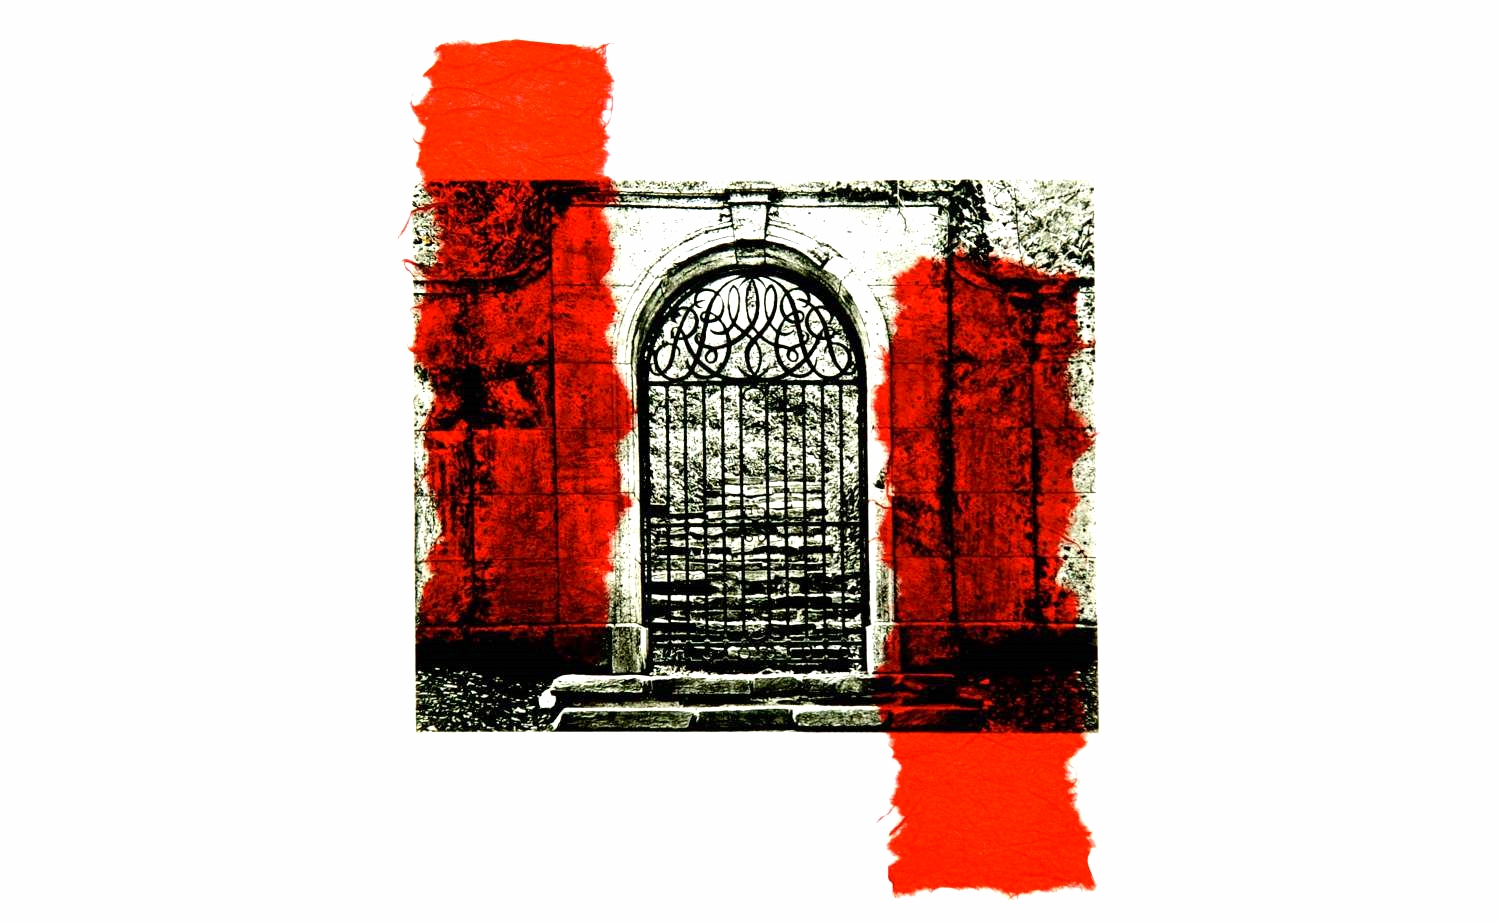 Dumbarton Gate chine-collé (red)